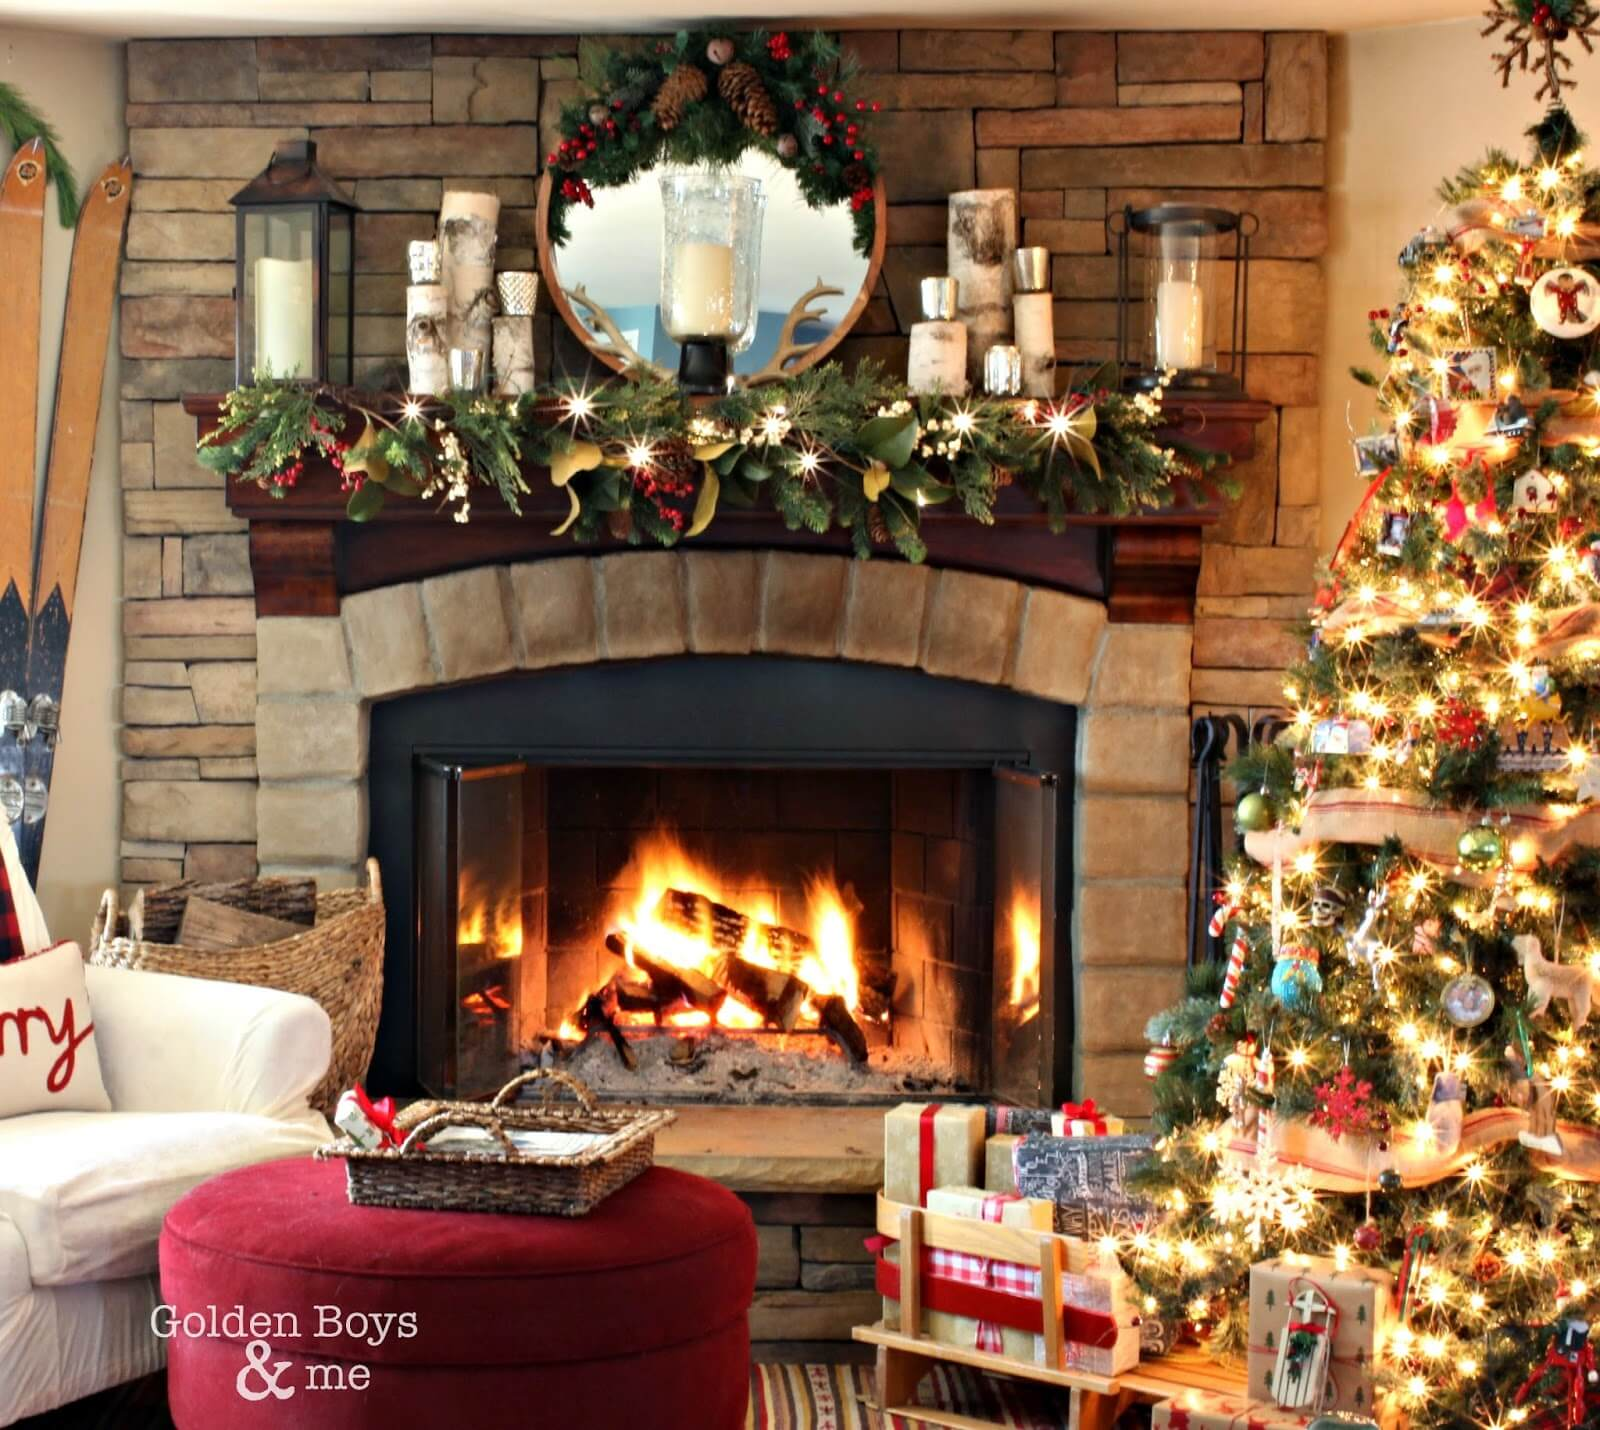 Christmas Mantel Ideas.32 Best Christmas Mantel Decoration Ideas And Designs For 2019